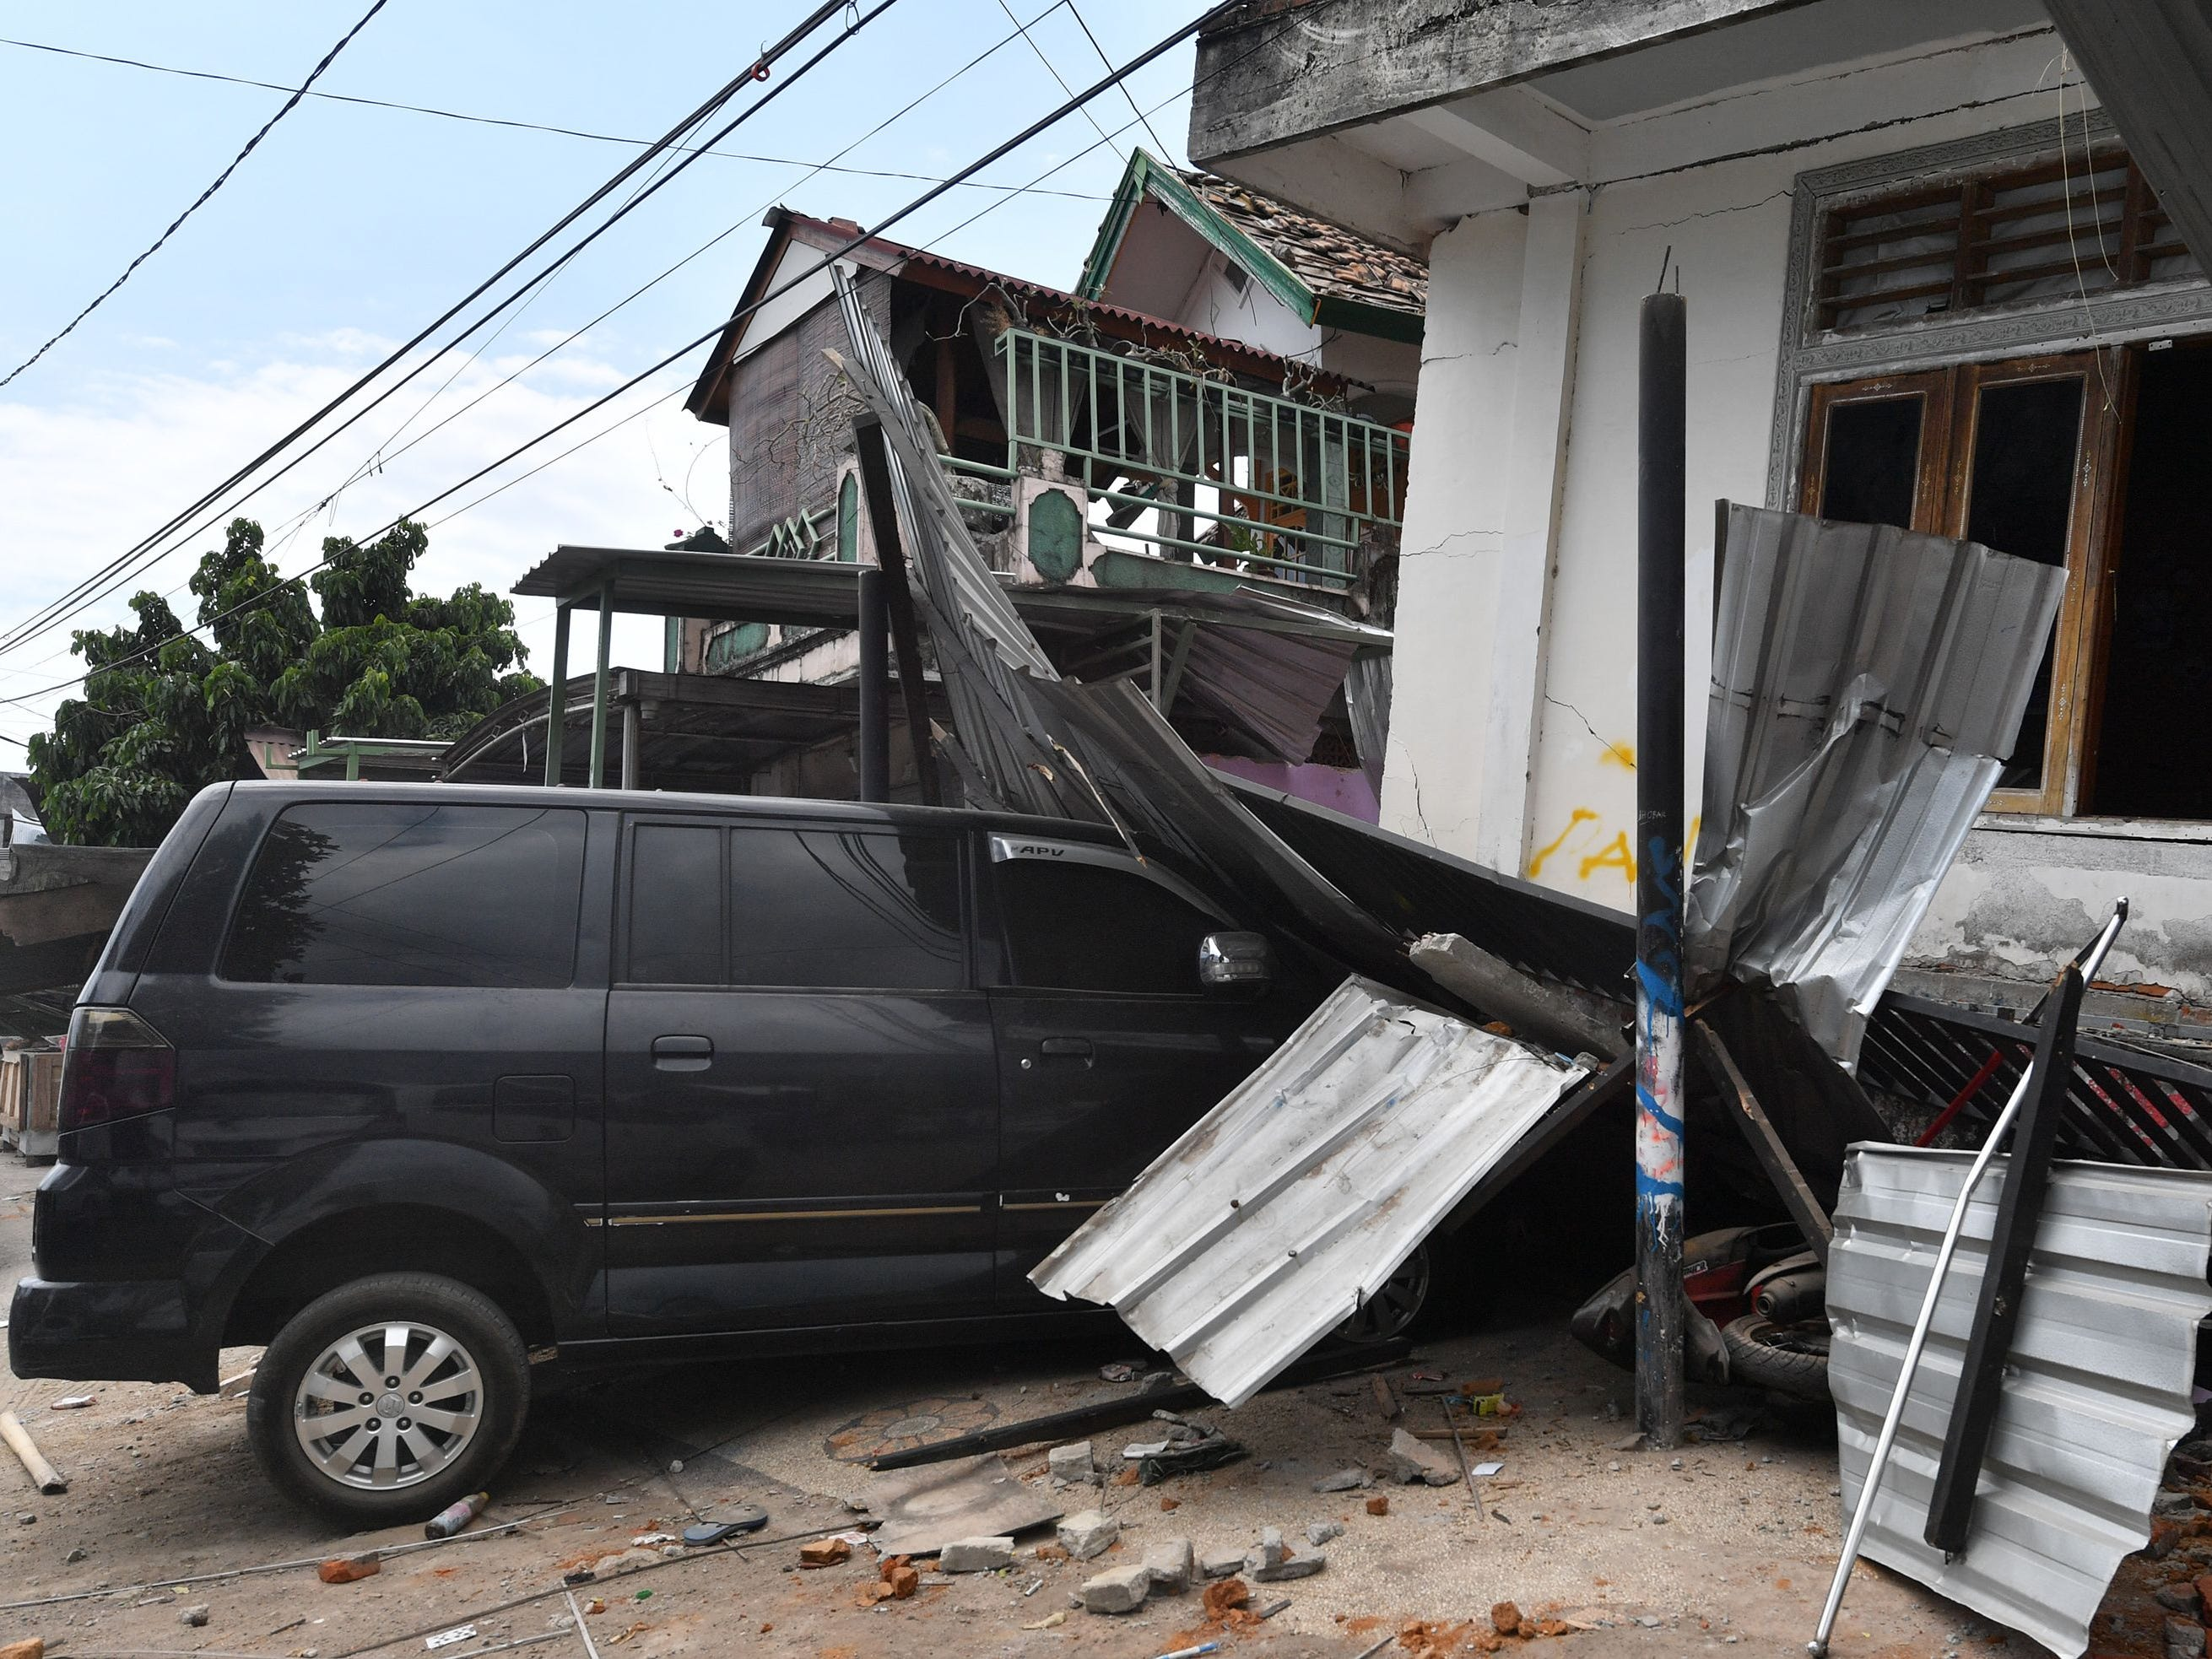 A damaged car and houses are seen in Bangsal, northern Lombok on Aug. 8, 2018, three days after the area was struck by an earthquake.